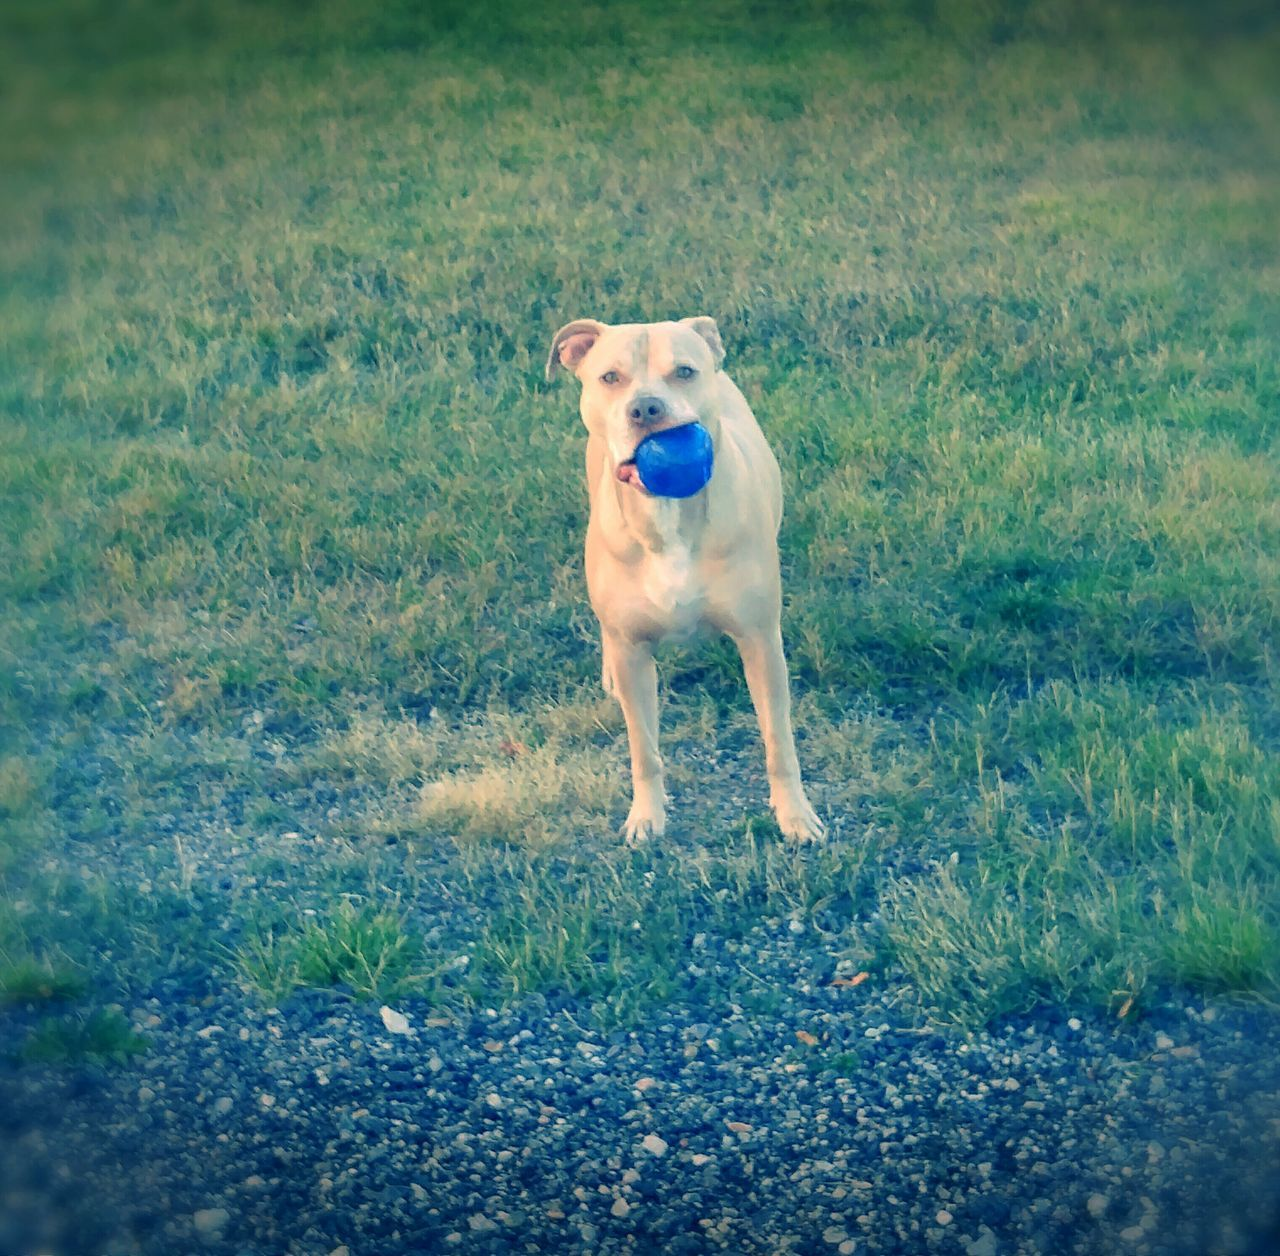 His name is Savior for a reason, Domestic Animals Dog Pets One Animal Animal Themes Mammal Grass Field Full Length Grassy Loyalty Animal Front View Zoology Pampered Pets Focus On Foreground Majestic Breaking Stereotypical Pitbull Image